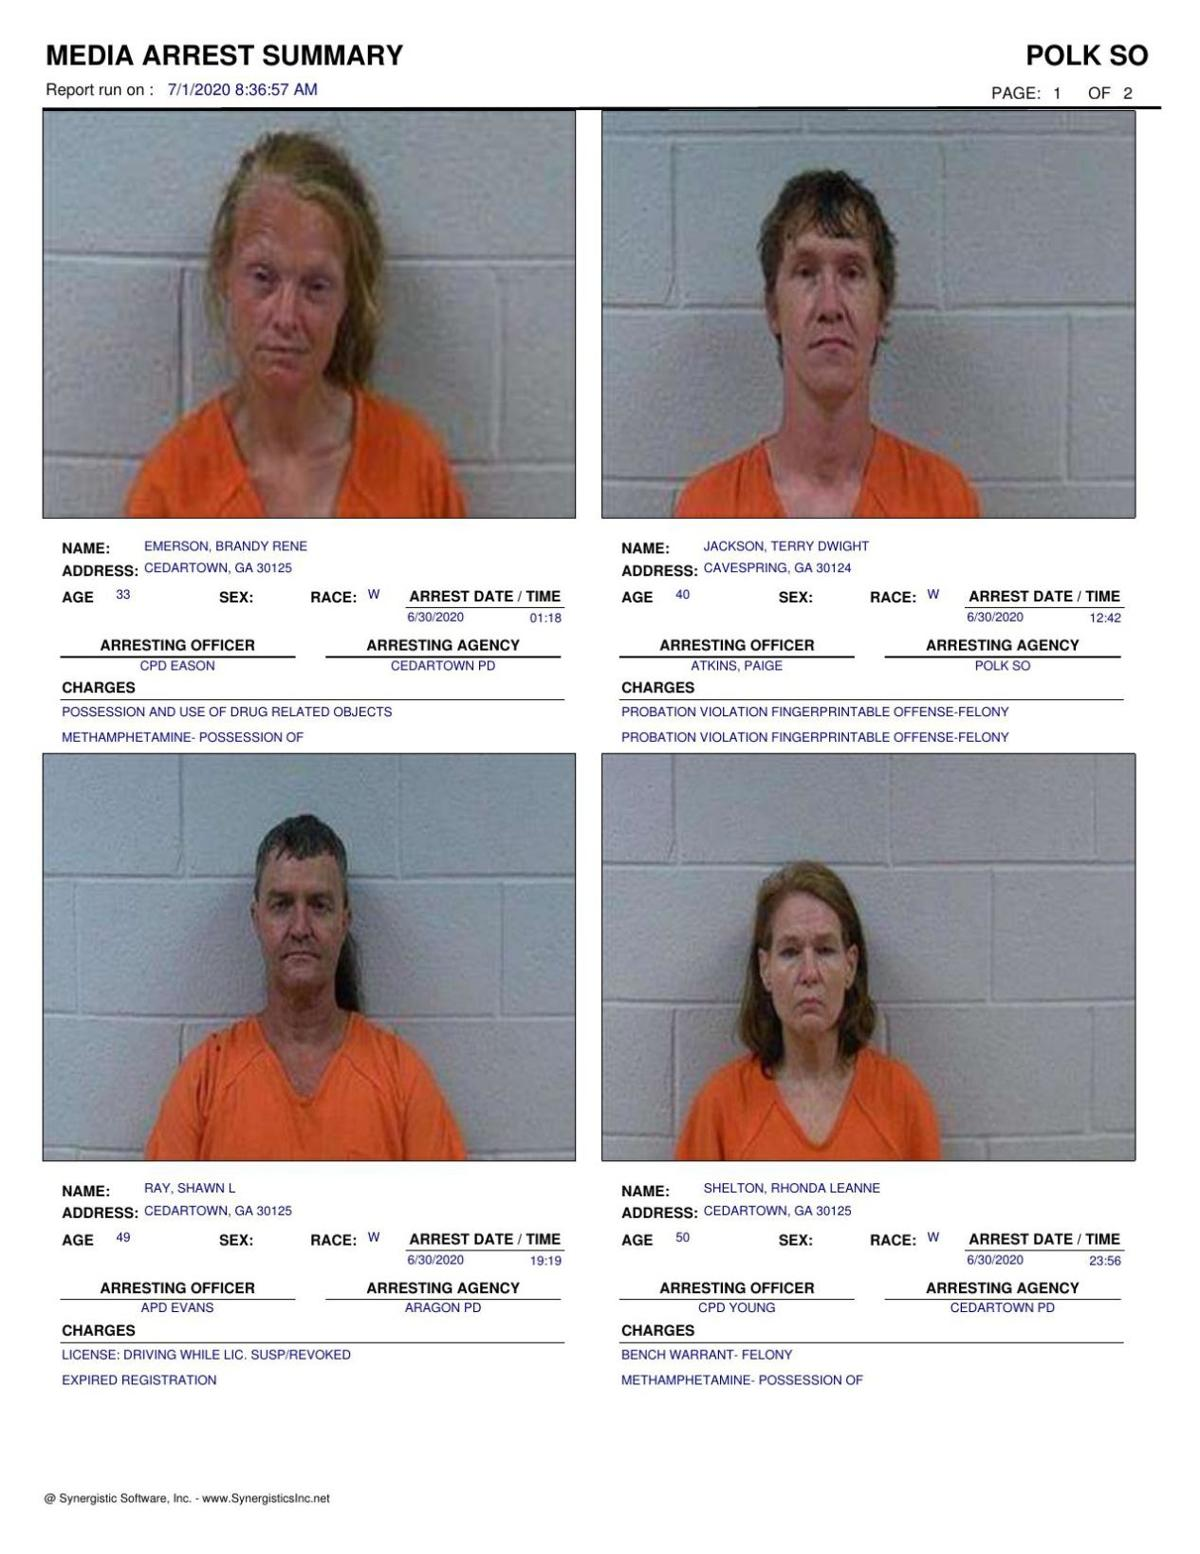 Polk County Jail Report for Wednesday, July 1